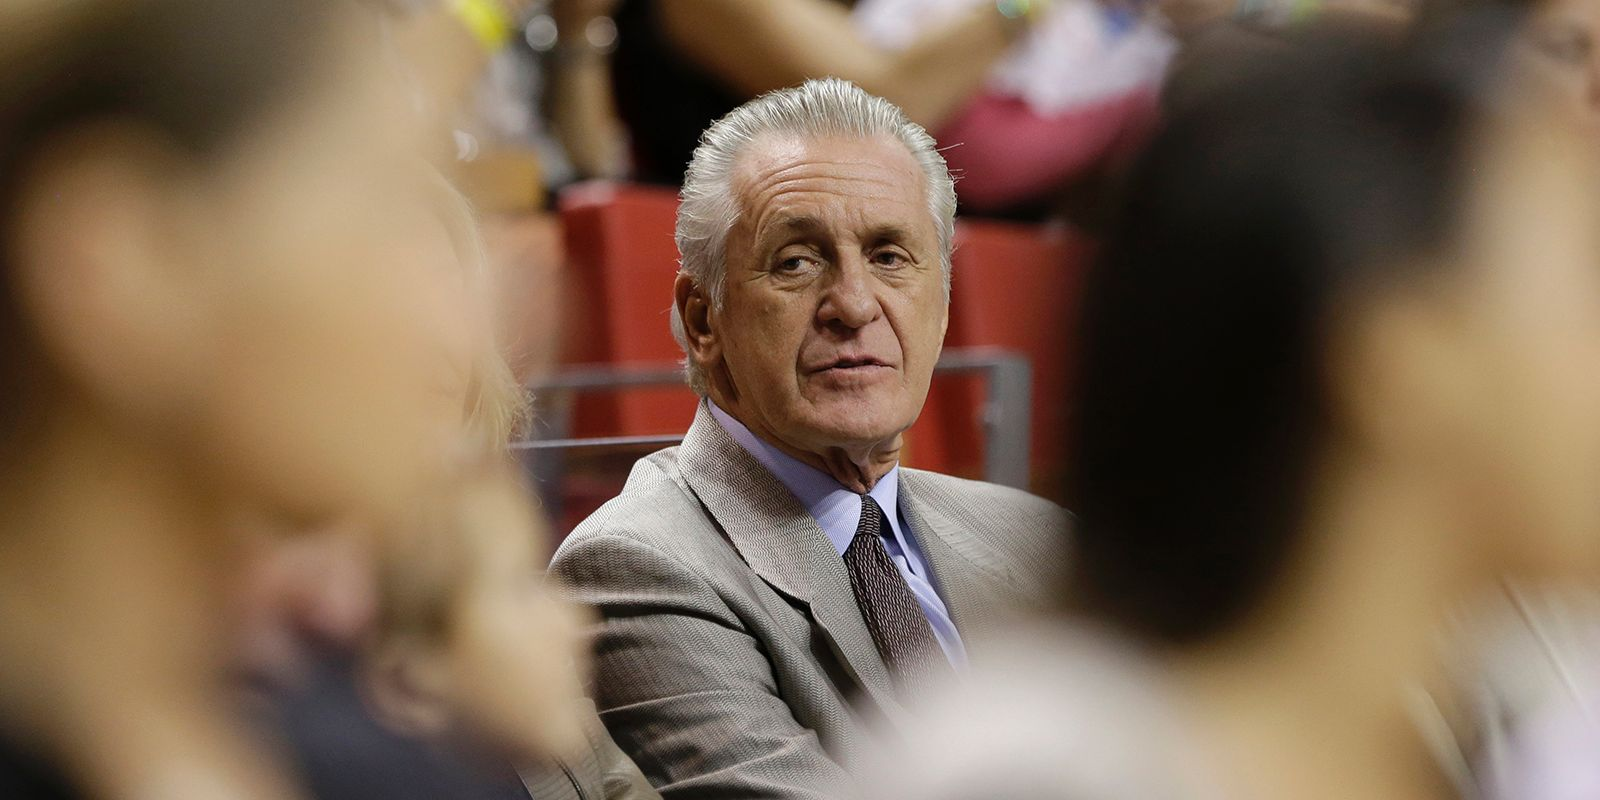 Nba Basketball Miami Heat Bedroom In: Why Miami Heat President Pat Riley Can't Leave The NBA